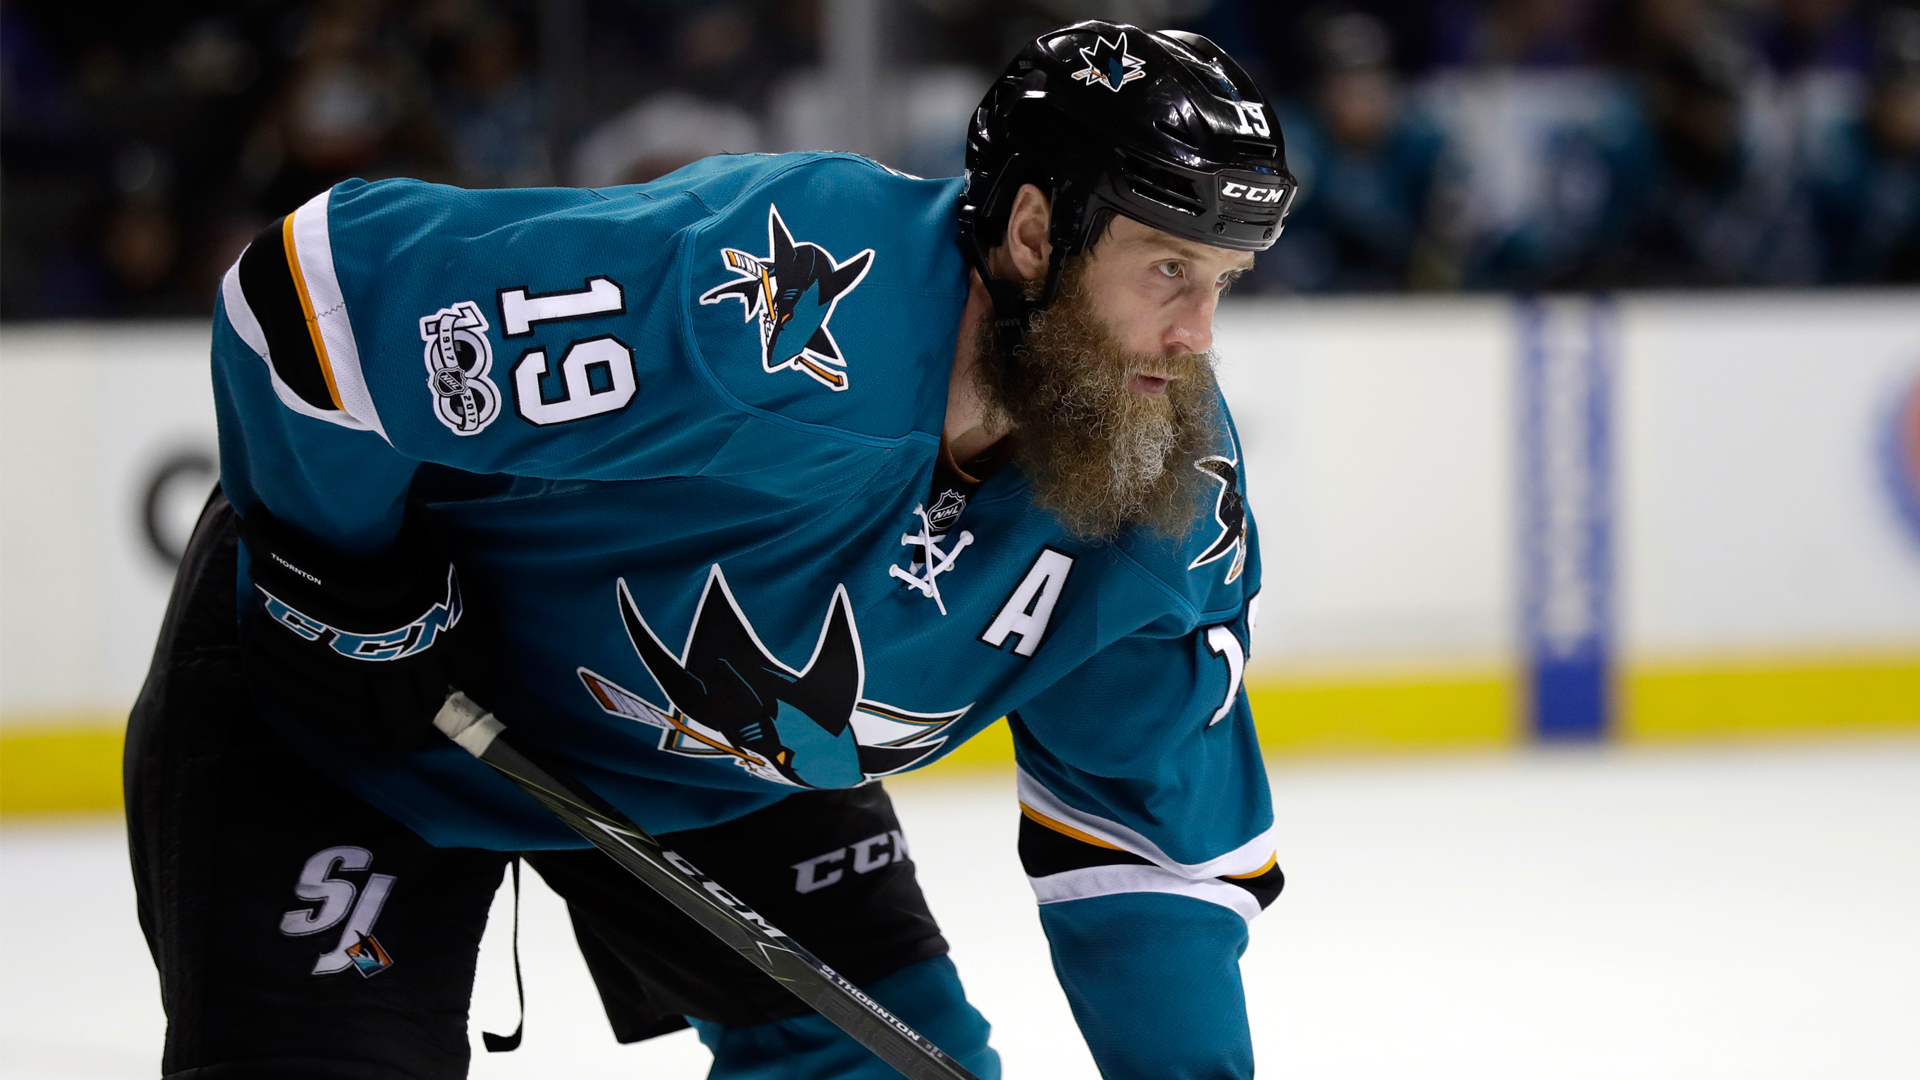 DeBoer Joe Thornton played through torn knee ligaments in 1920x1080